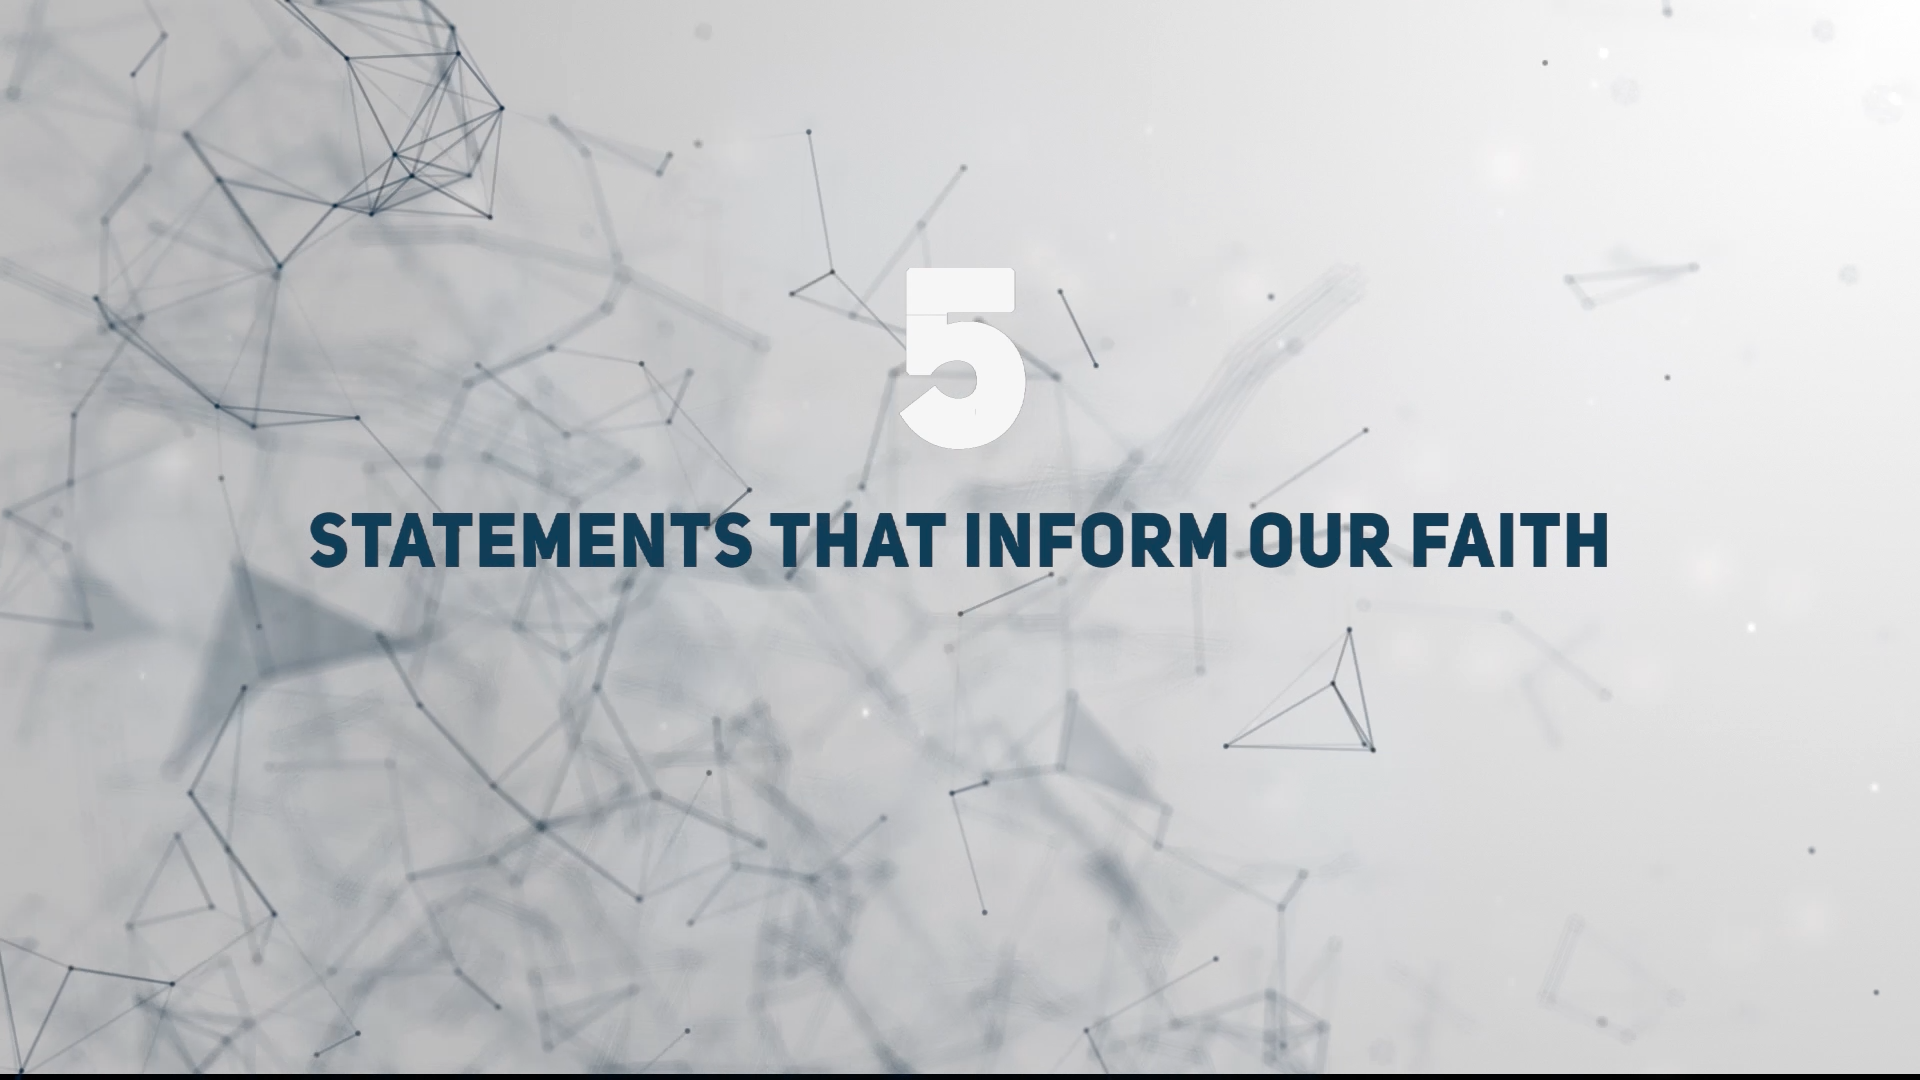 5 Statements that Inform Our Faith